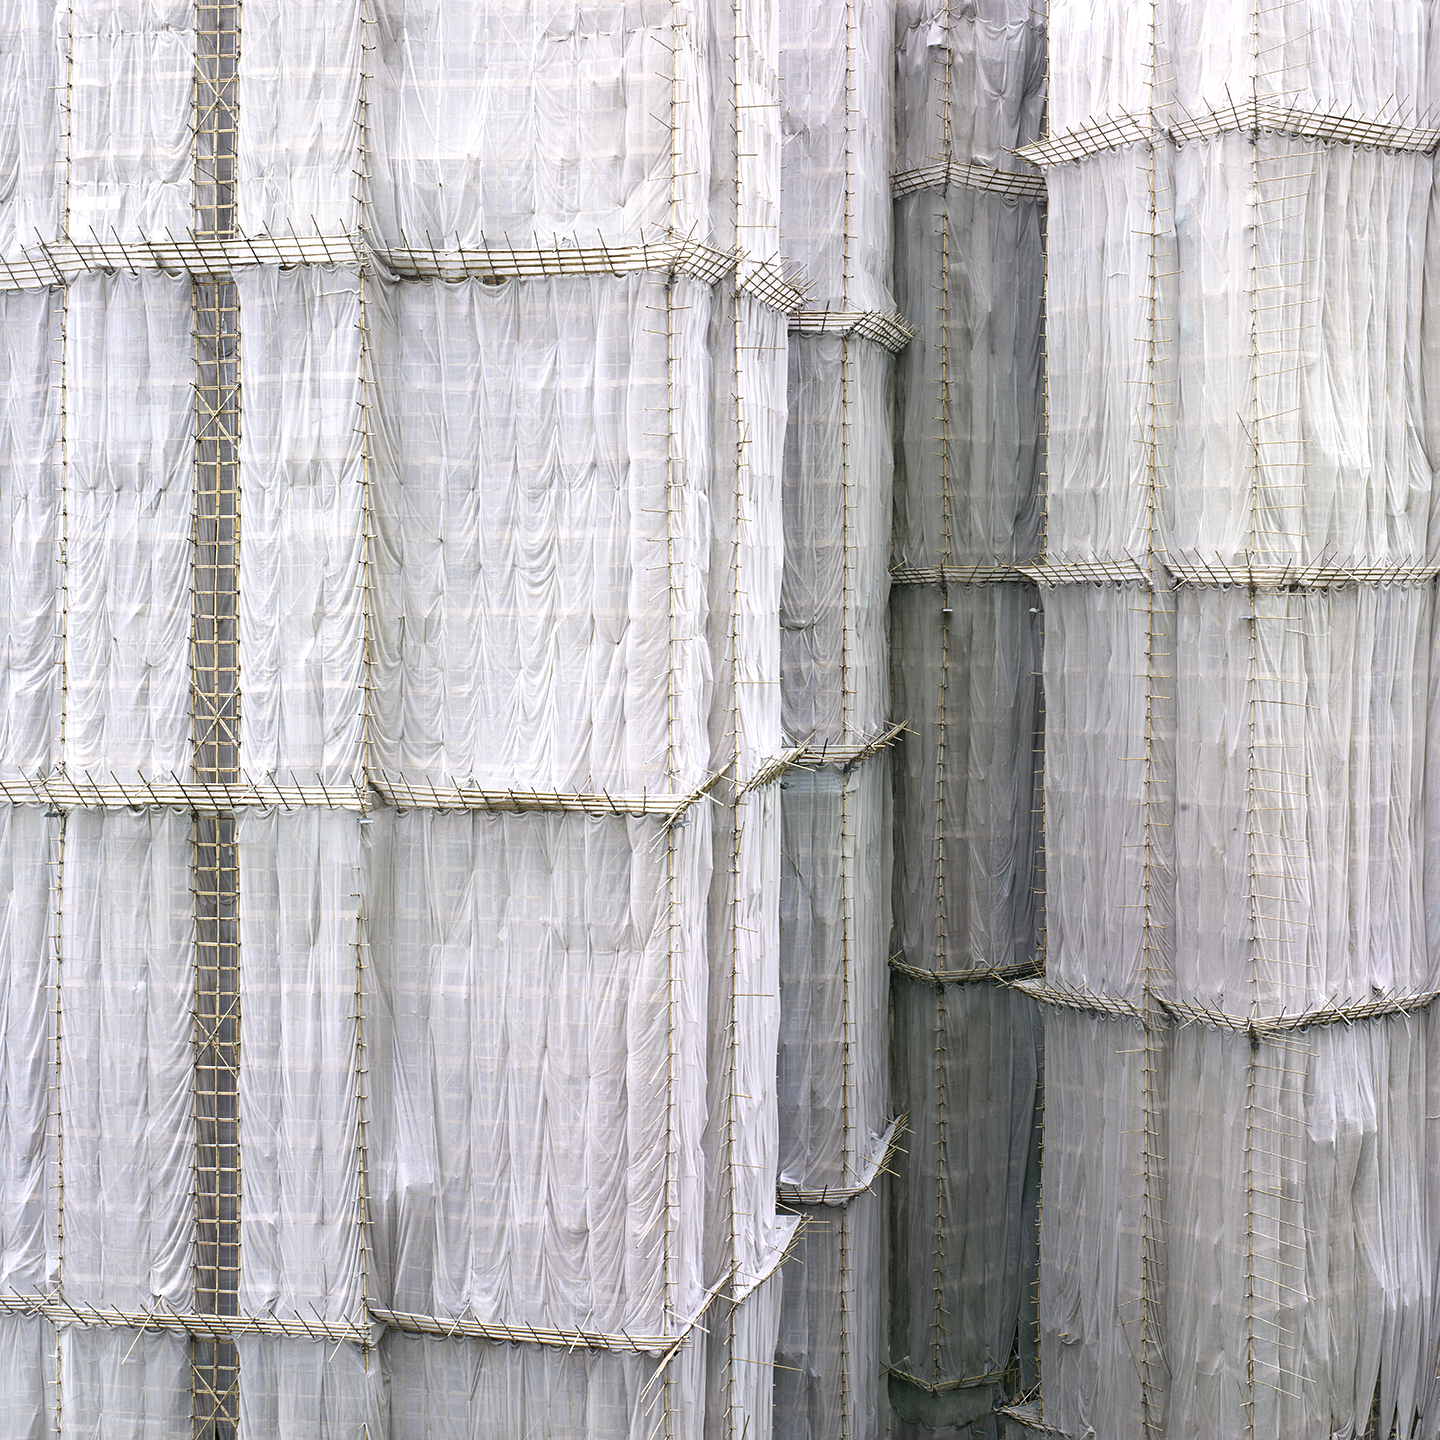 White Cocoon #7, Hong Kong - 2012